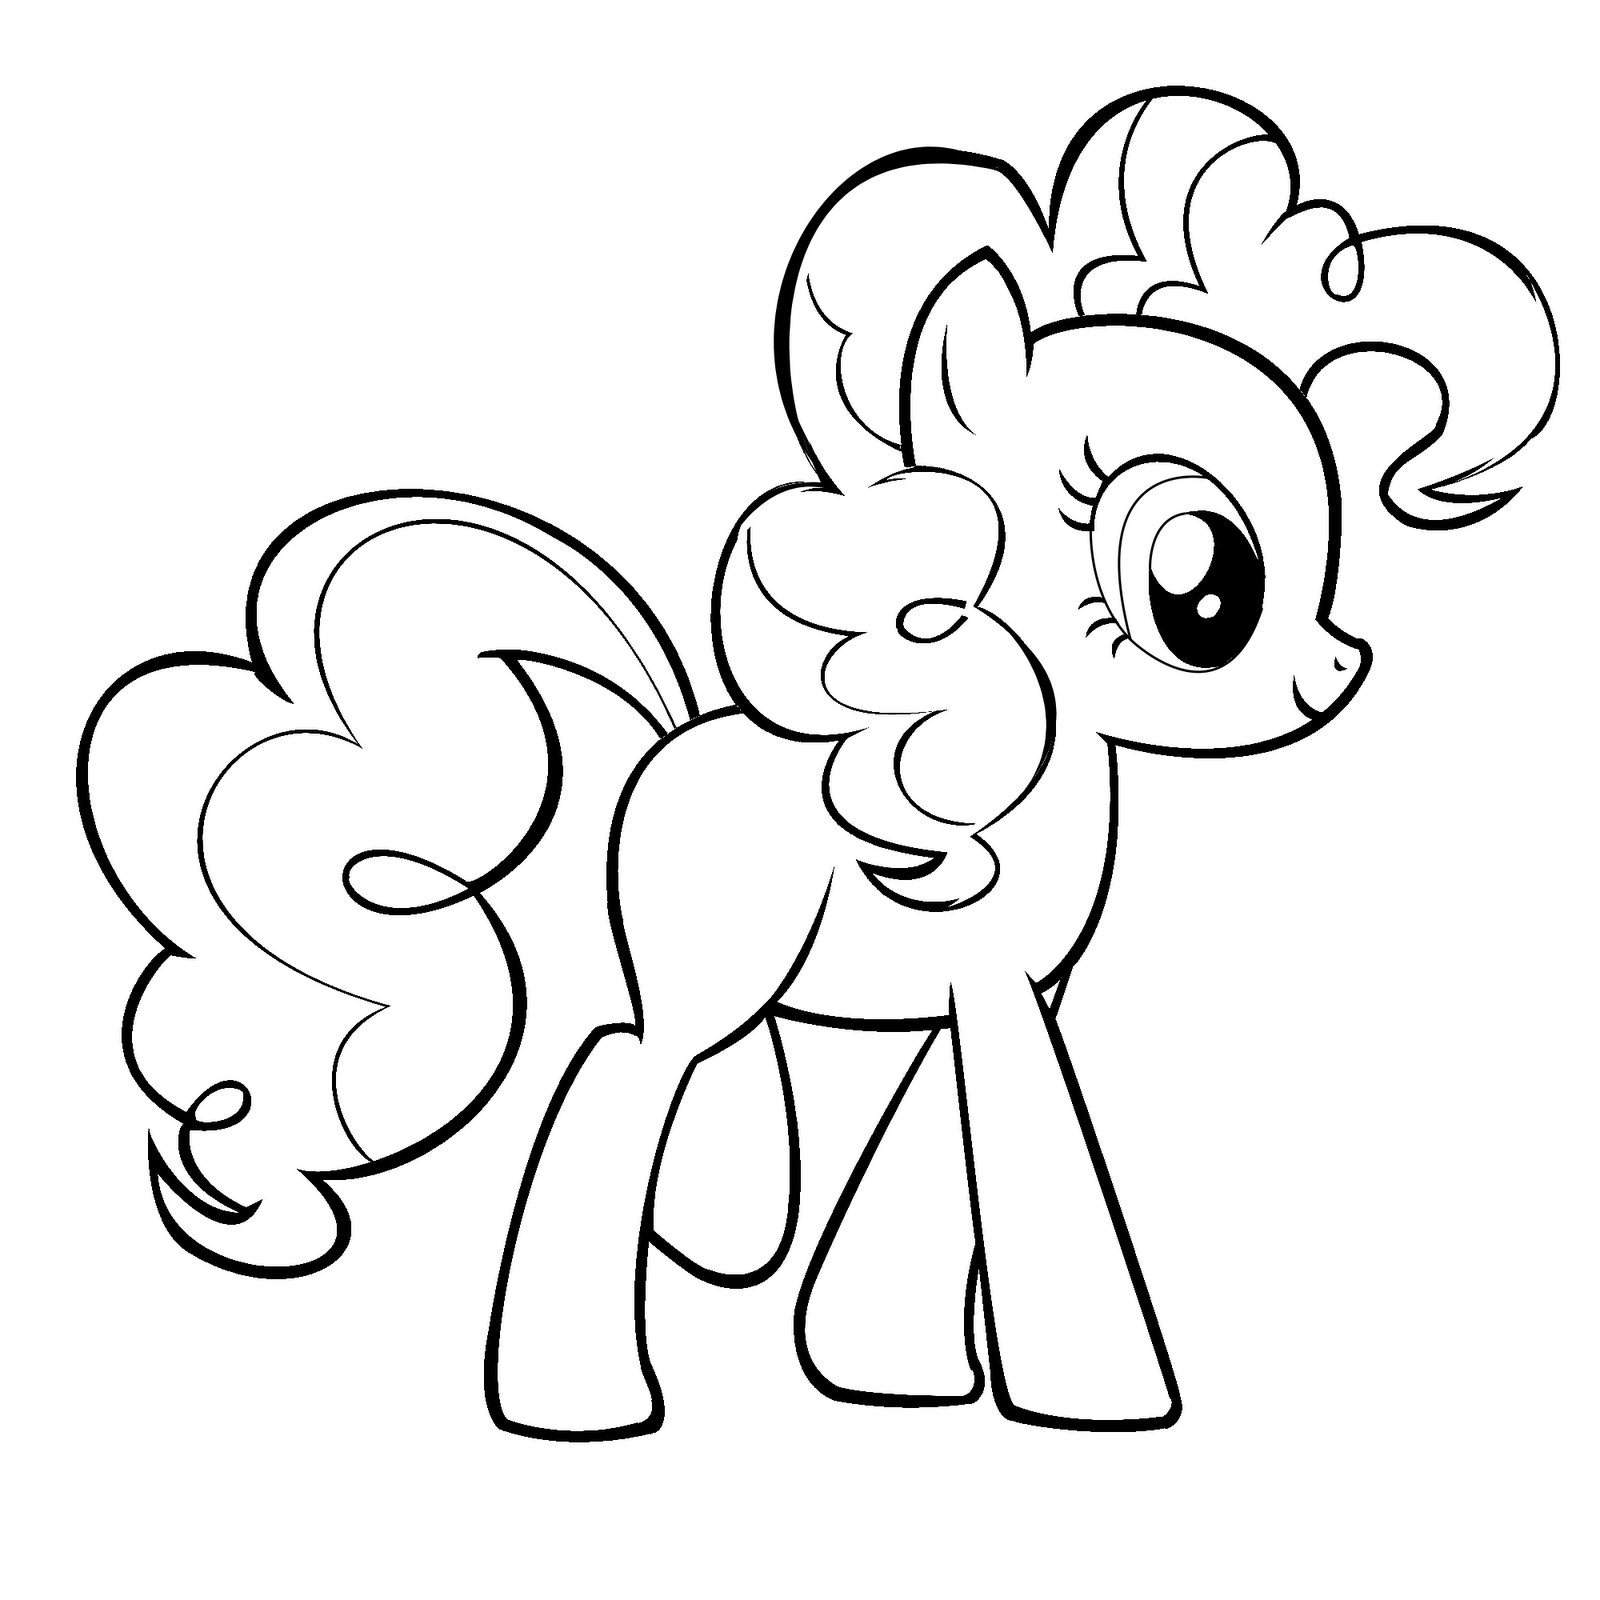 pinkie pie coloring page my little pony pinkie pie coloring pages